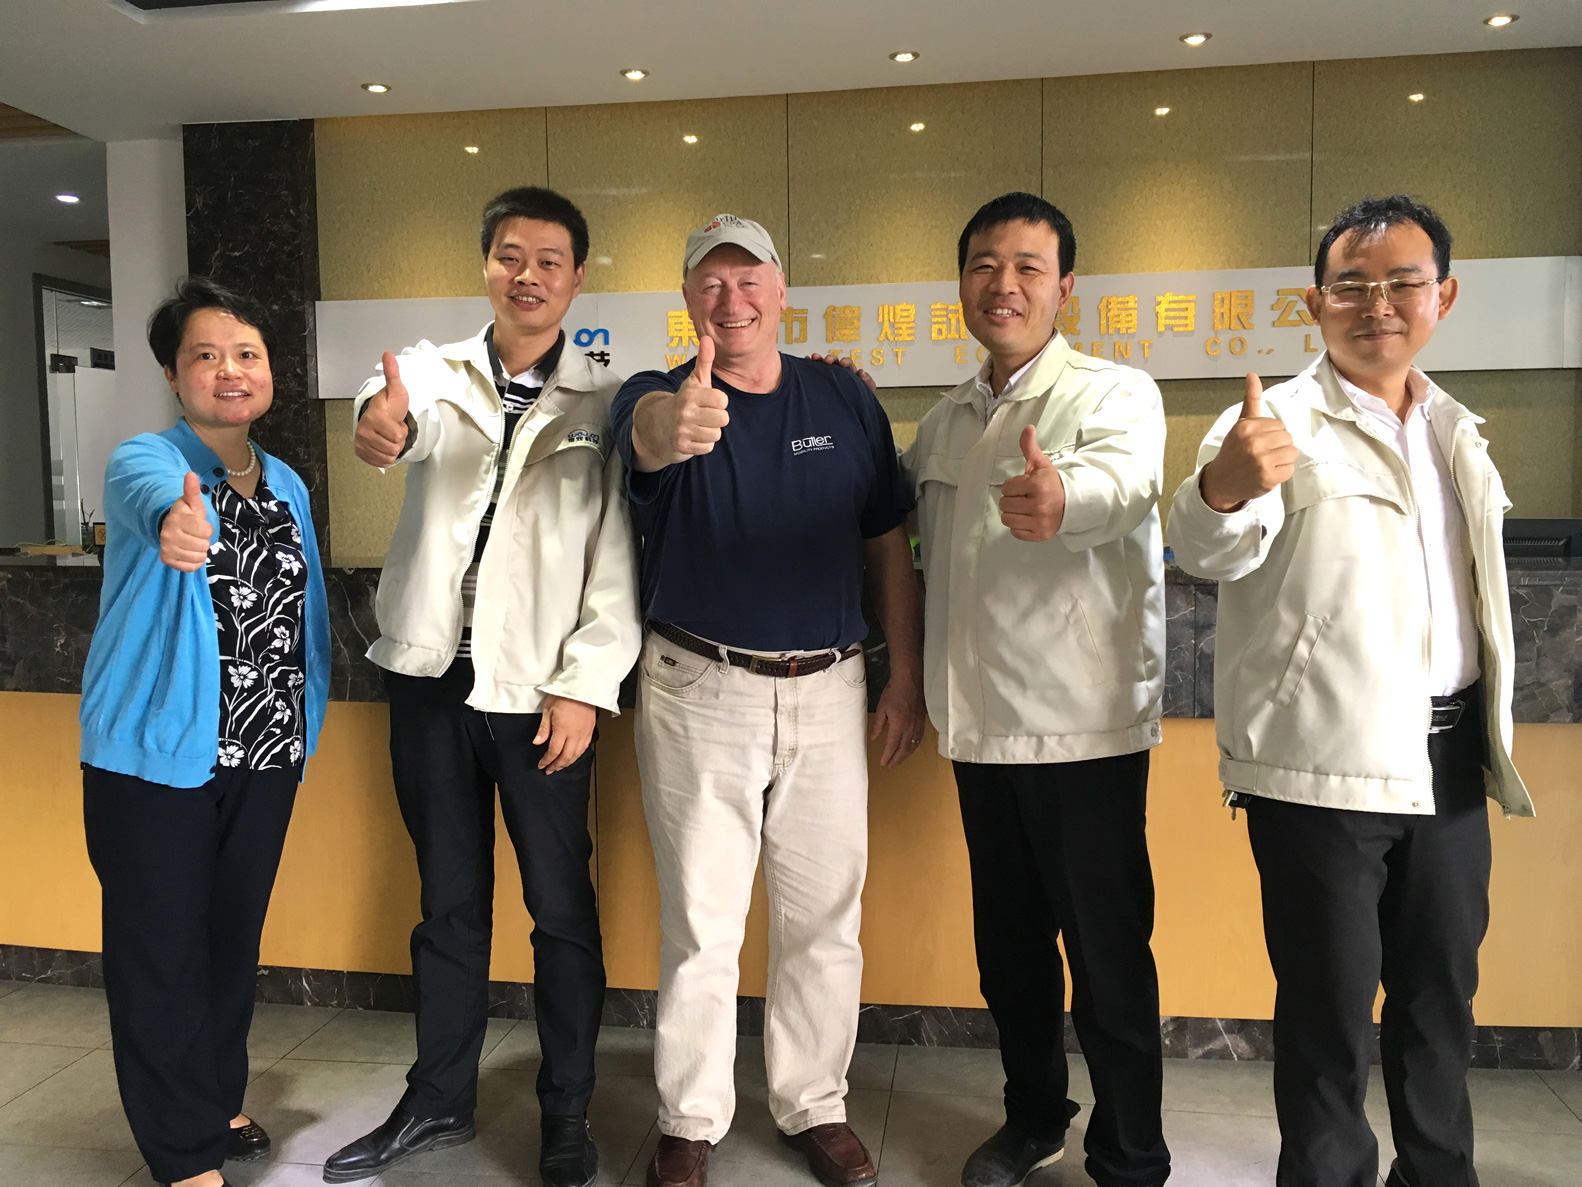 United States Customers Visit Wewon